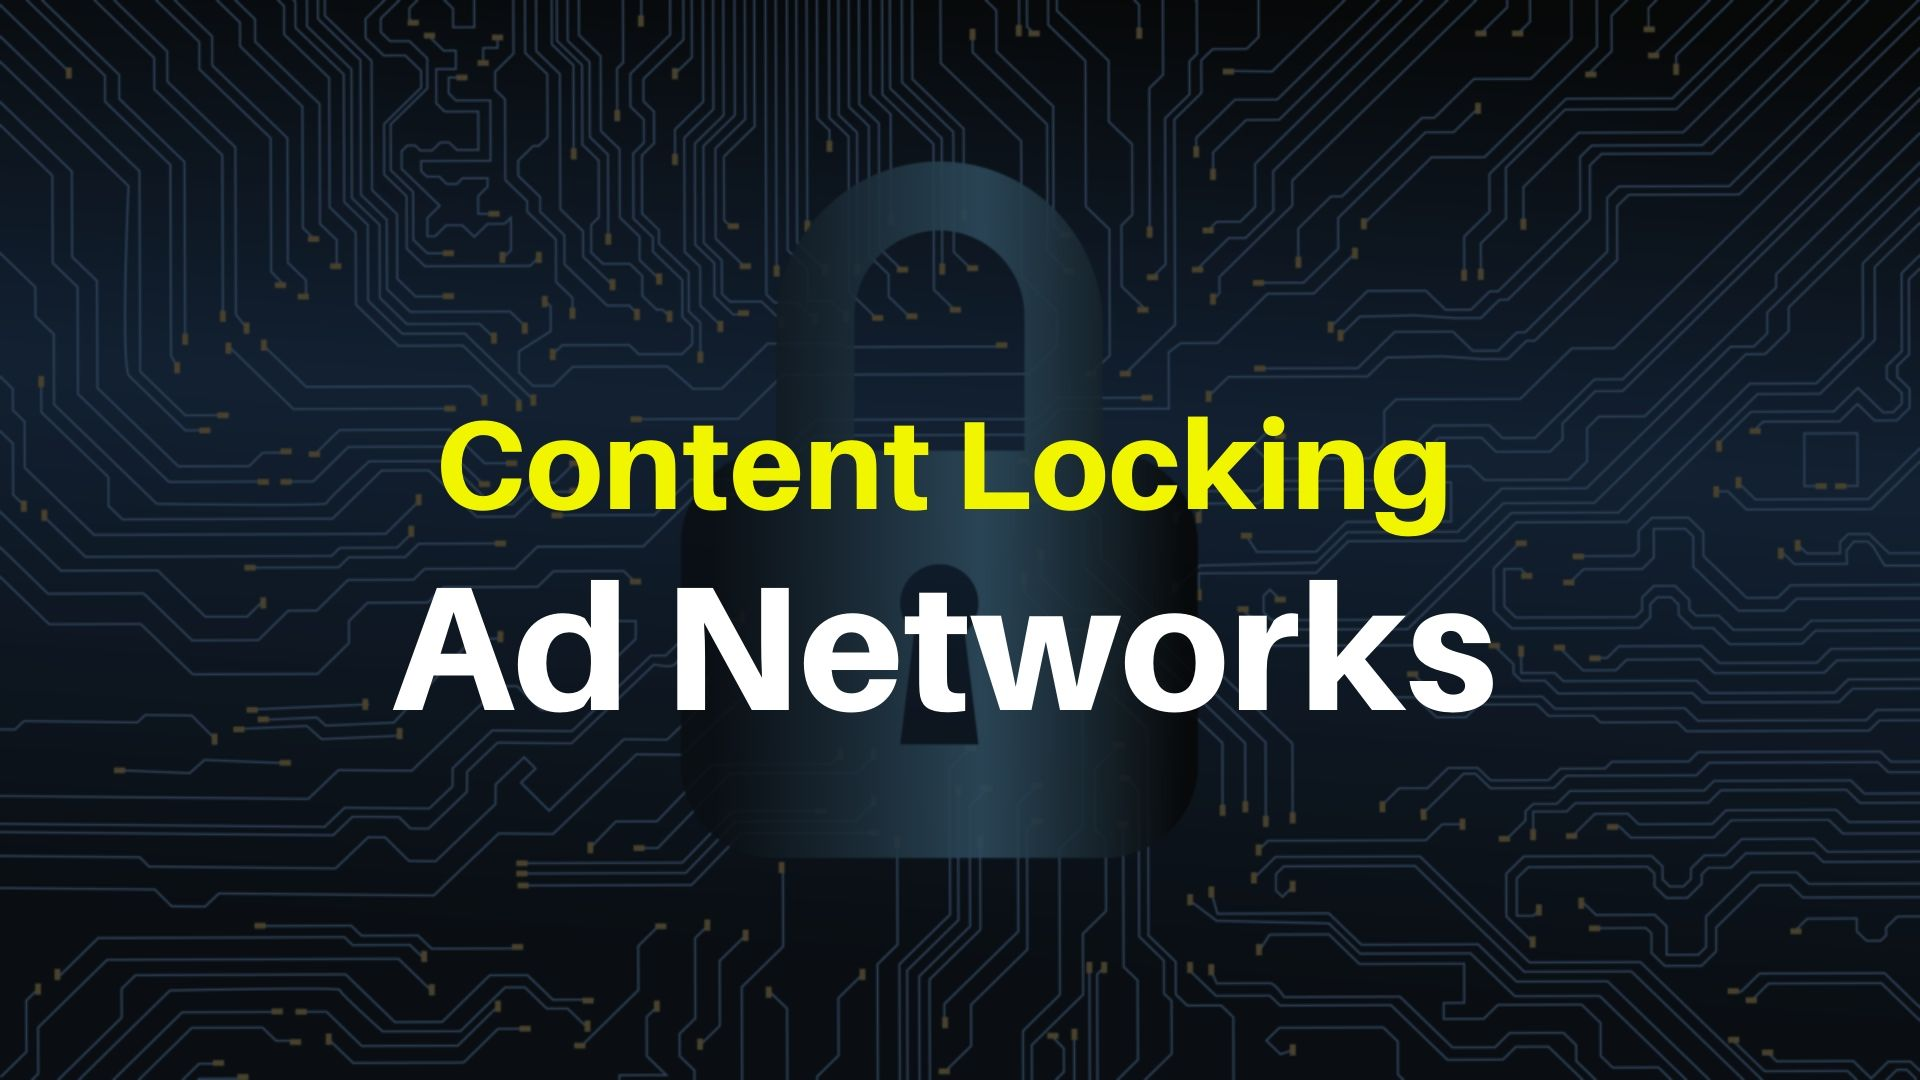 Content Locking Ad Networks